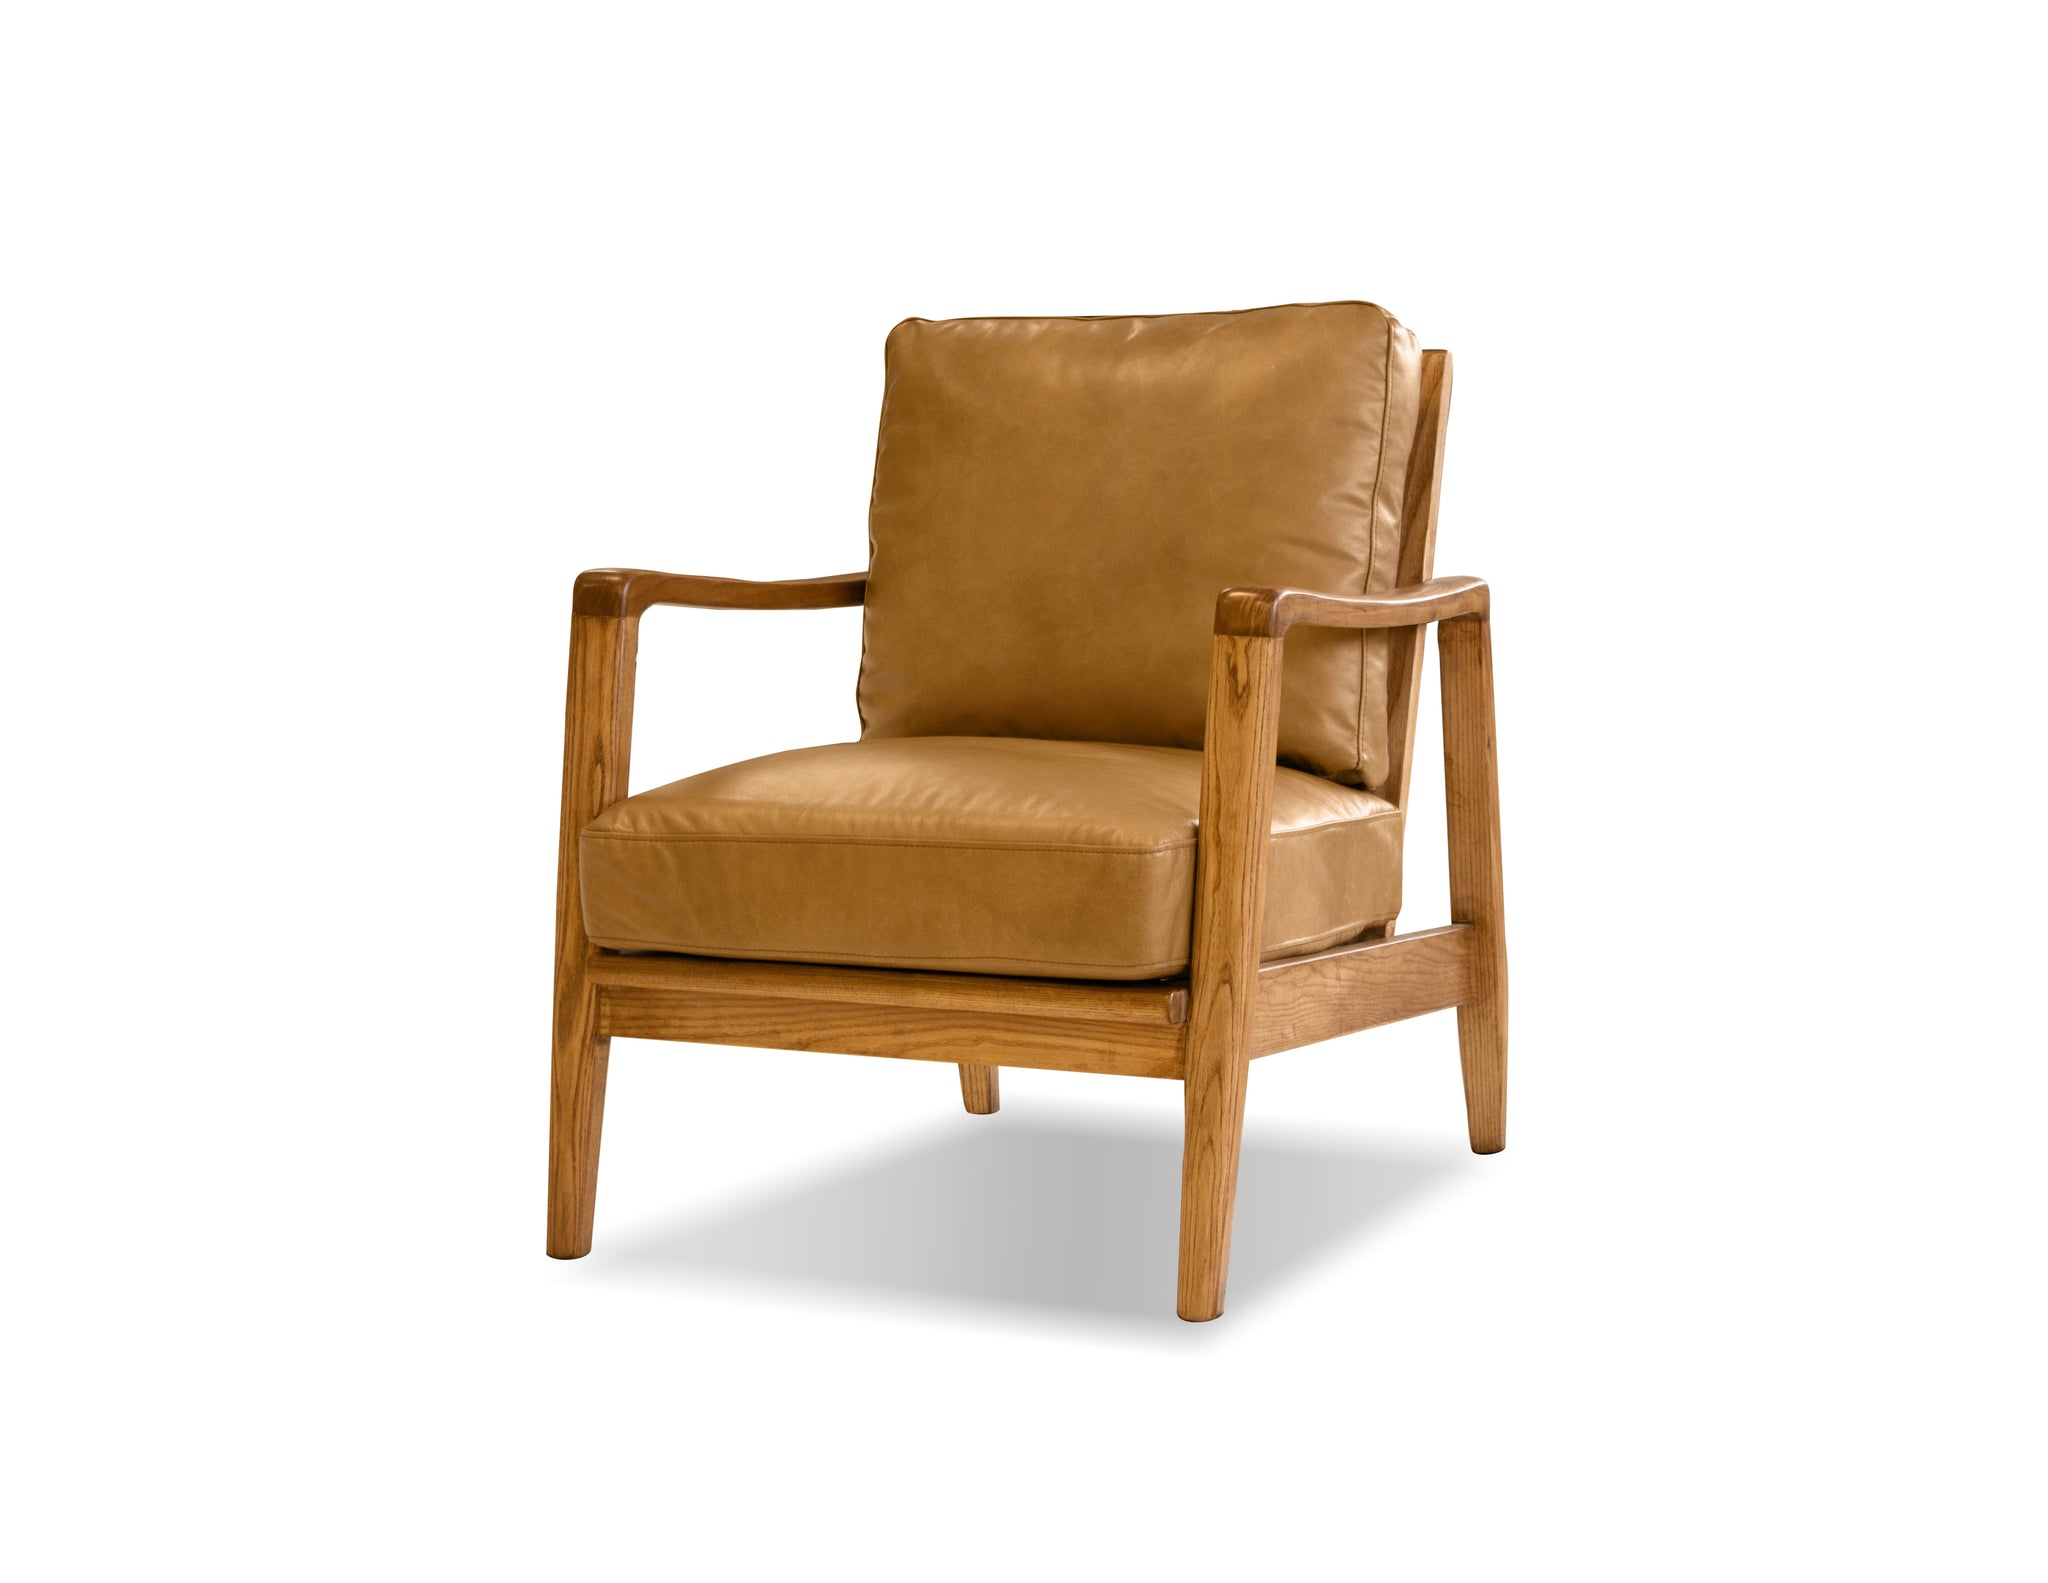 Picture of Craftsman Lounge Chair - Tan Leather